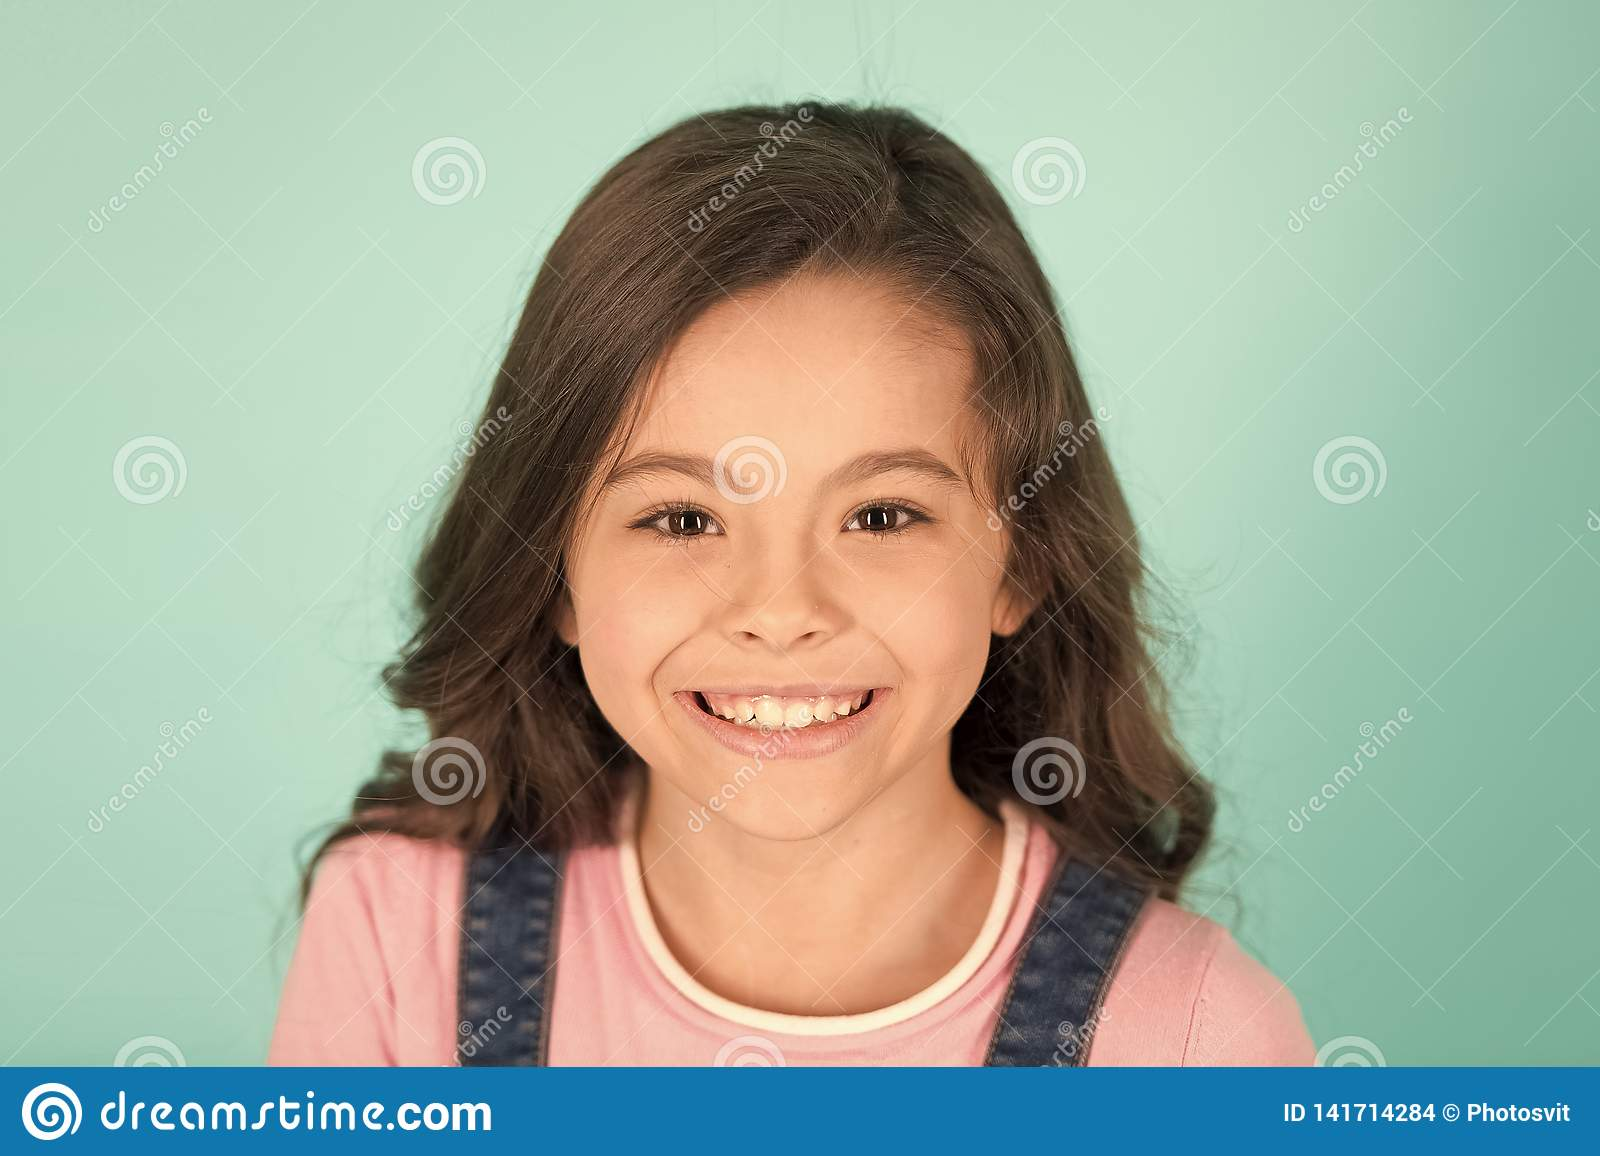 Beautiful smile. Child happy cheerful enjoy childhood. Girl curly hairstyle adorable smiling happy face. Kid charming